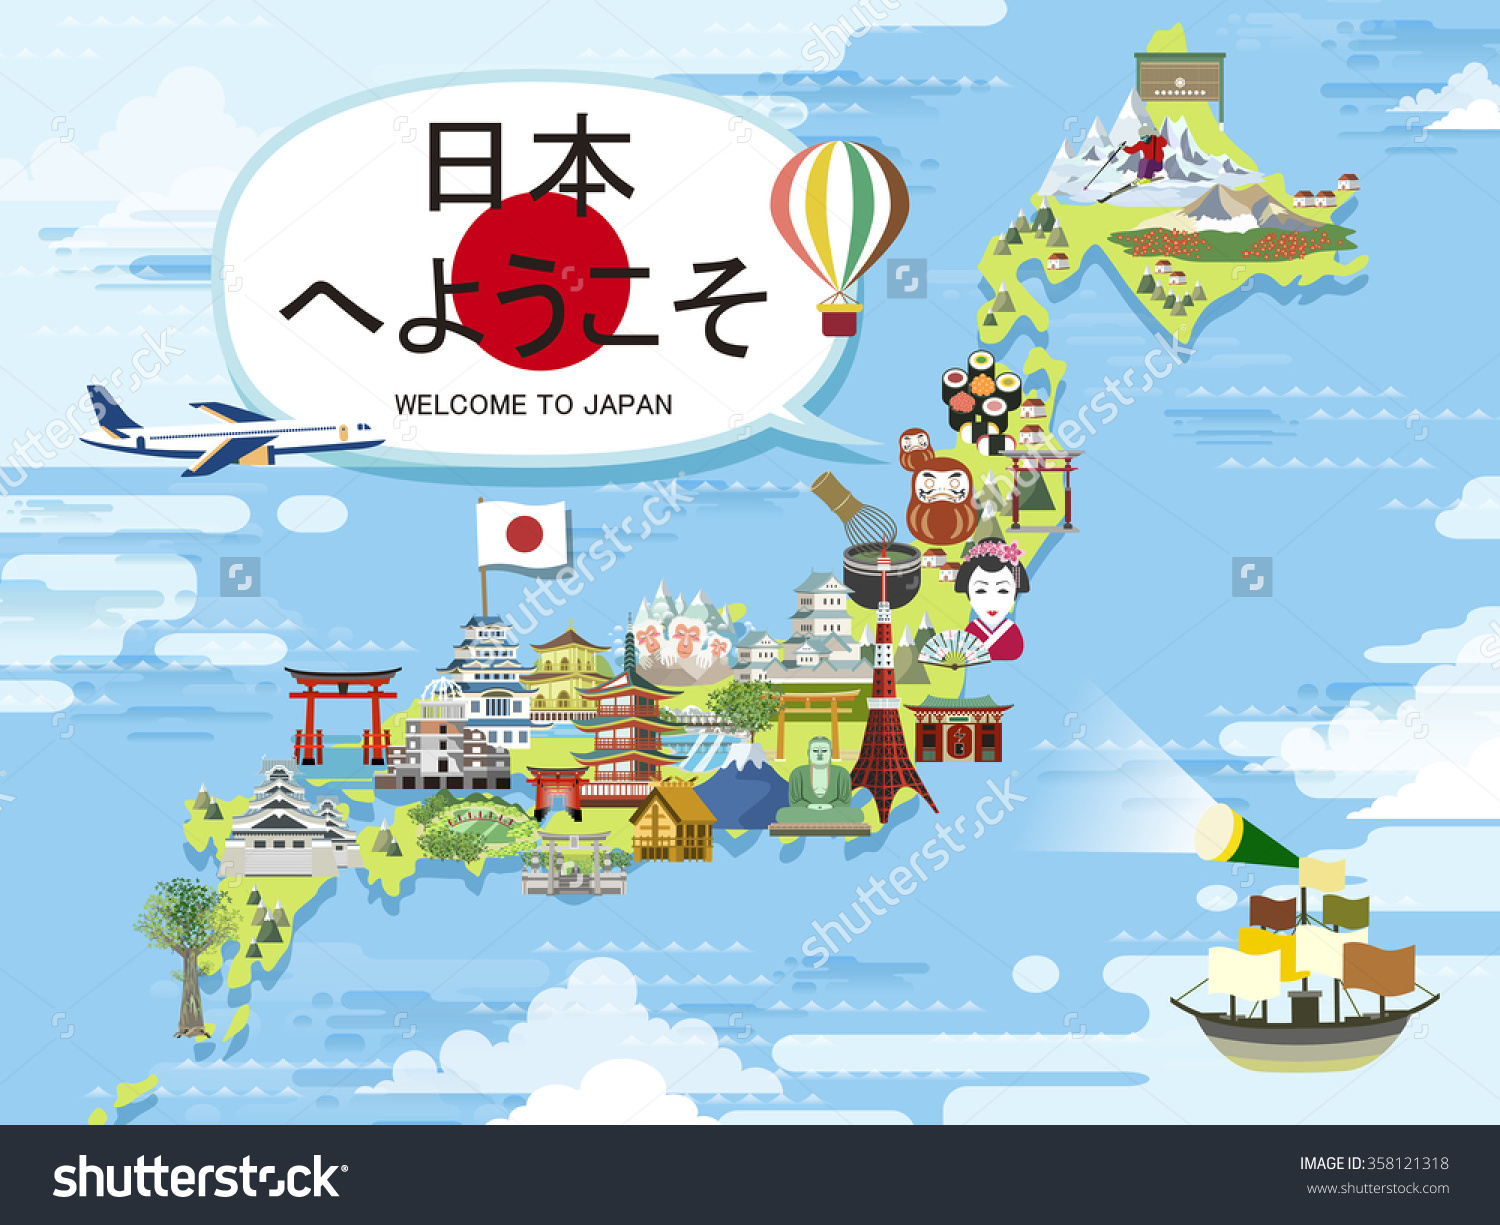 Attractive Japan Travel Map Design Welcome Illustration – Tourist Map Of Japan English